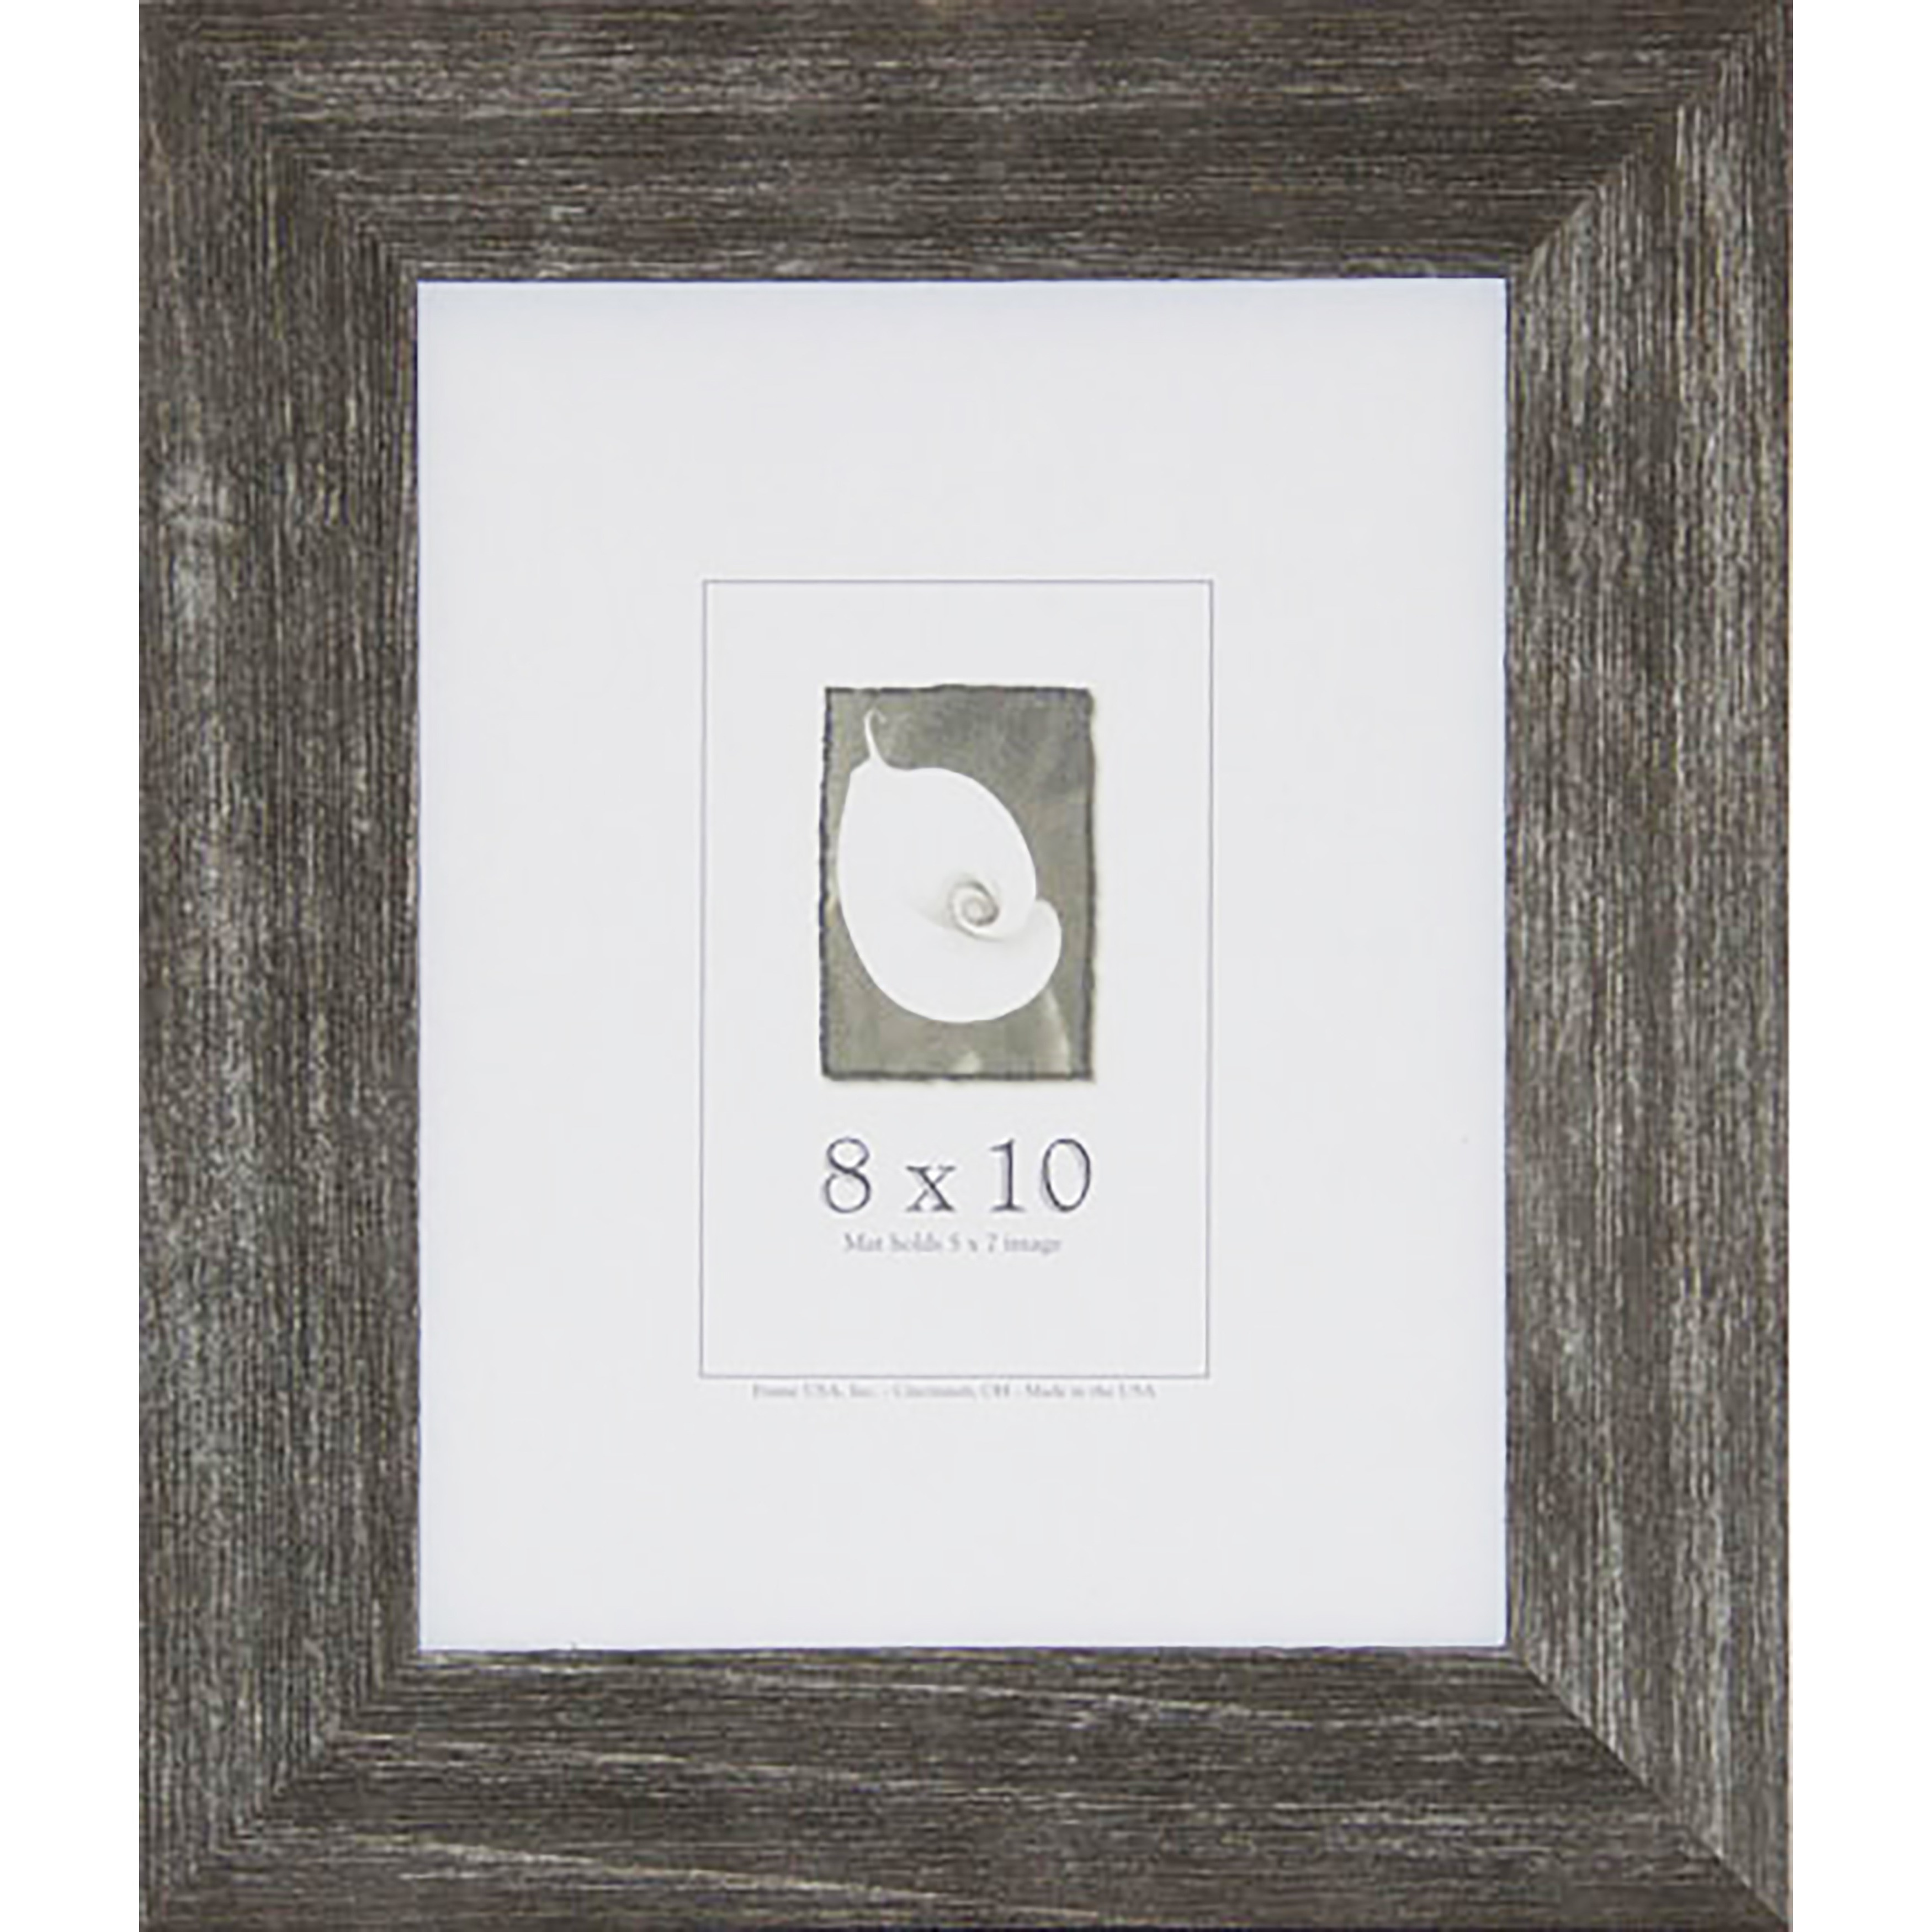 Buy Size 8x10 Picture Frames Photo Albums Online At Overstock